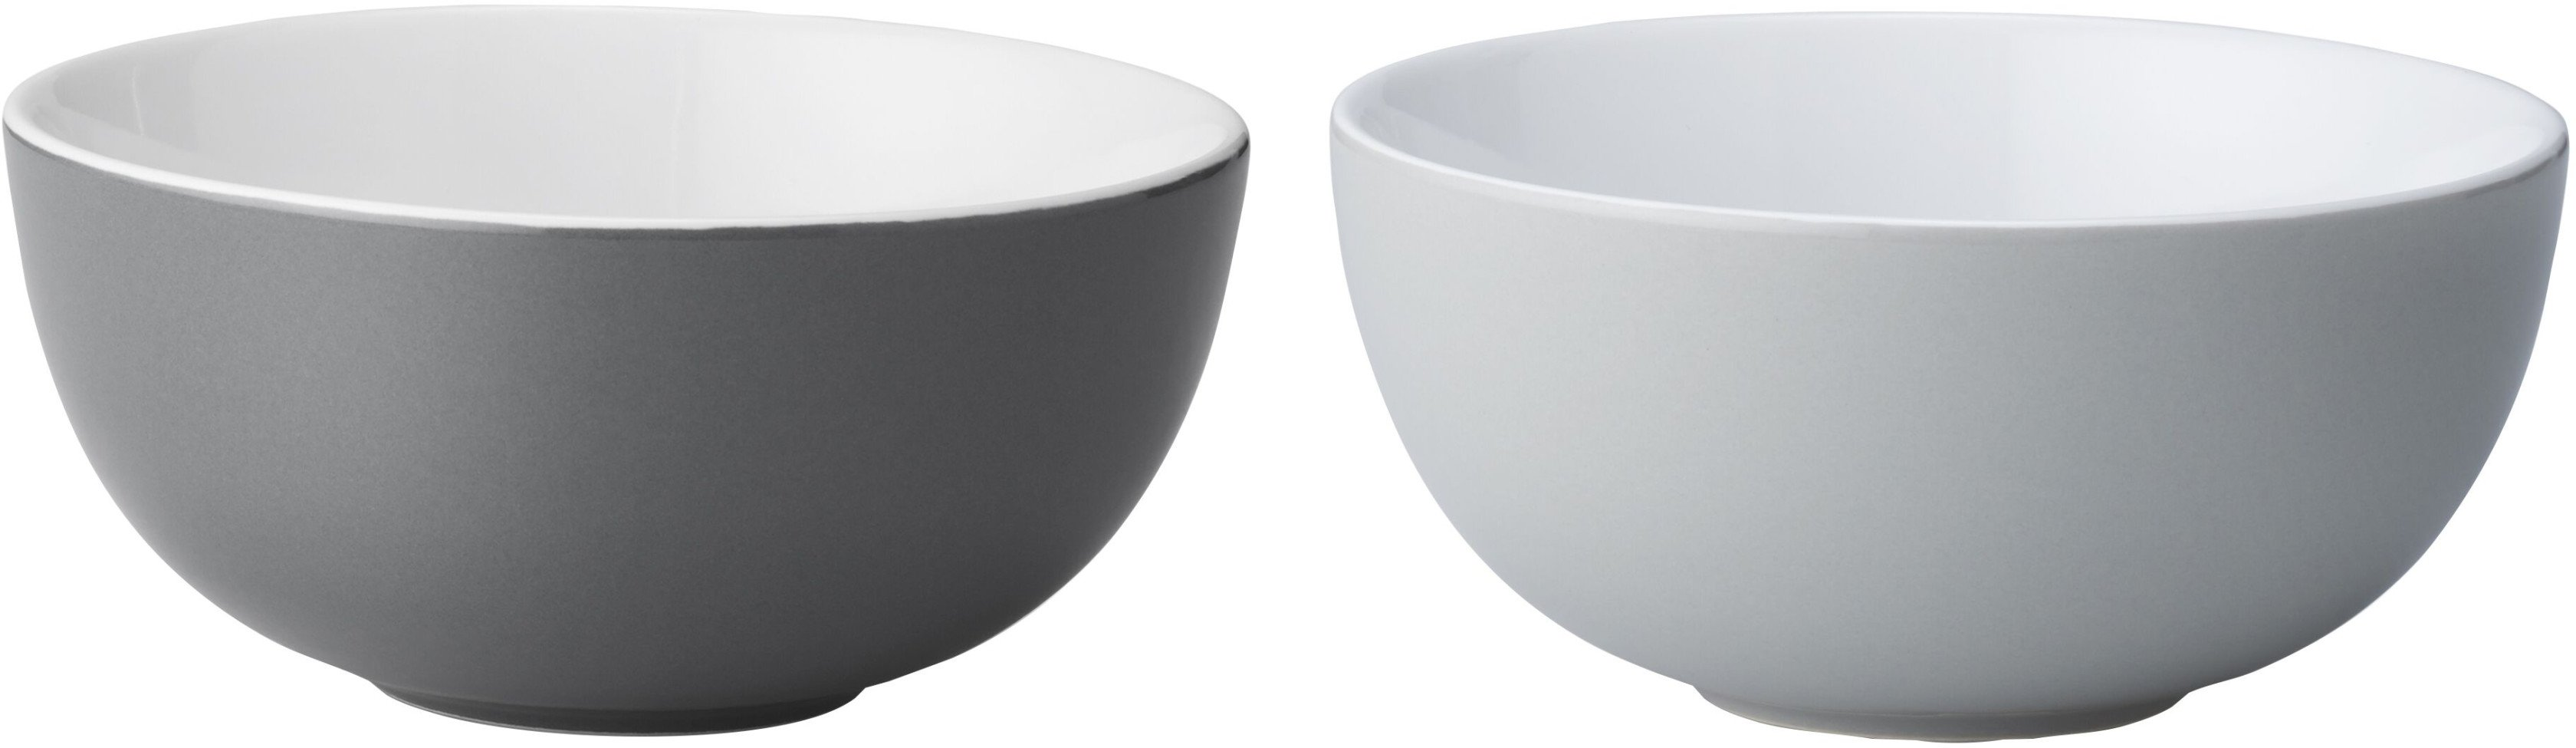 Pair of Emma Bowls S Grey by HolmbäckNordentoft for Stelton